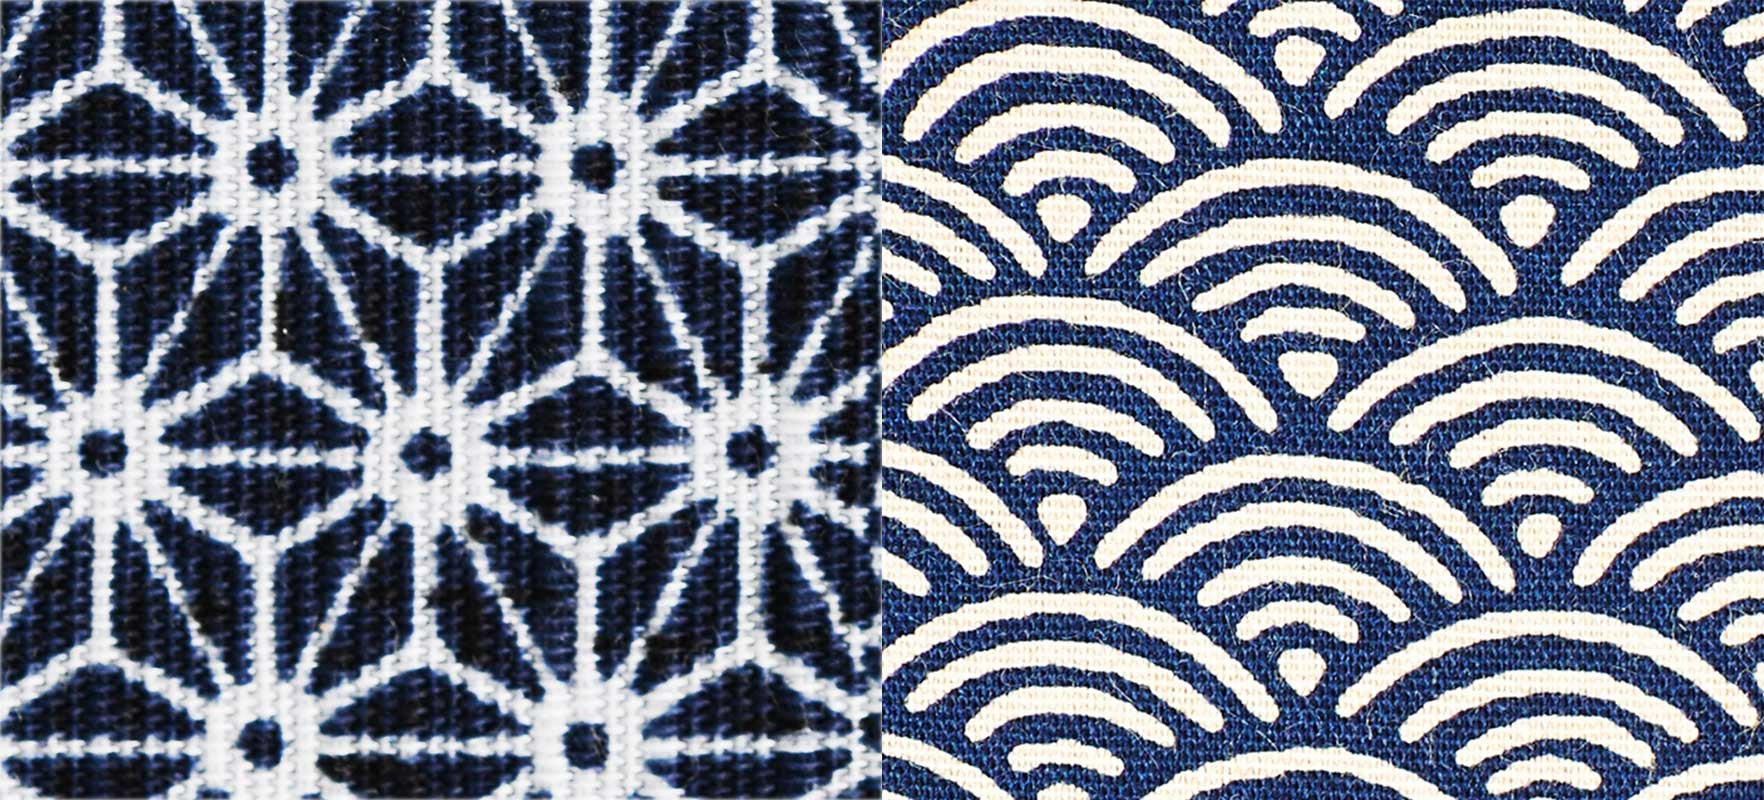 Traditional Japanese Patterns with everyday motifs